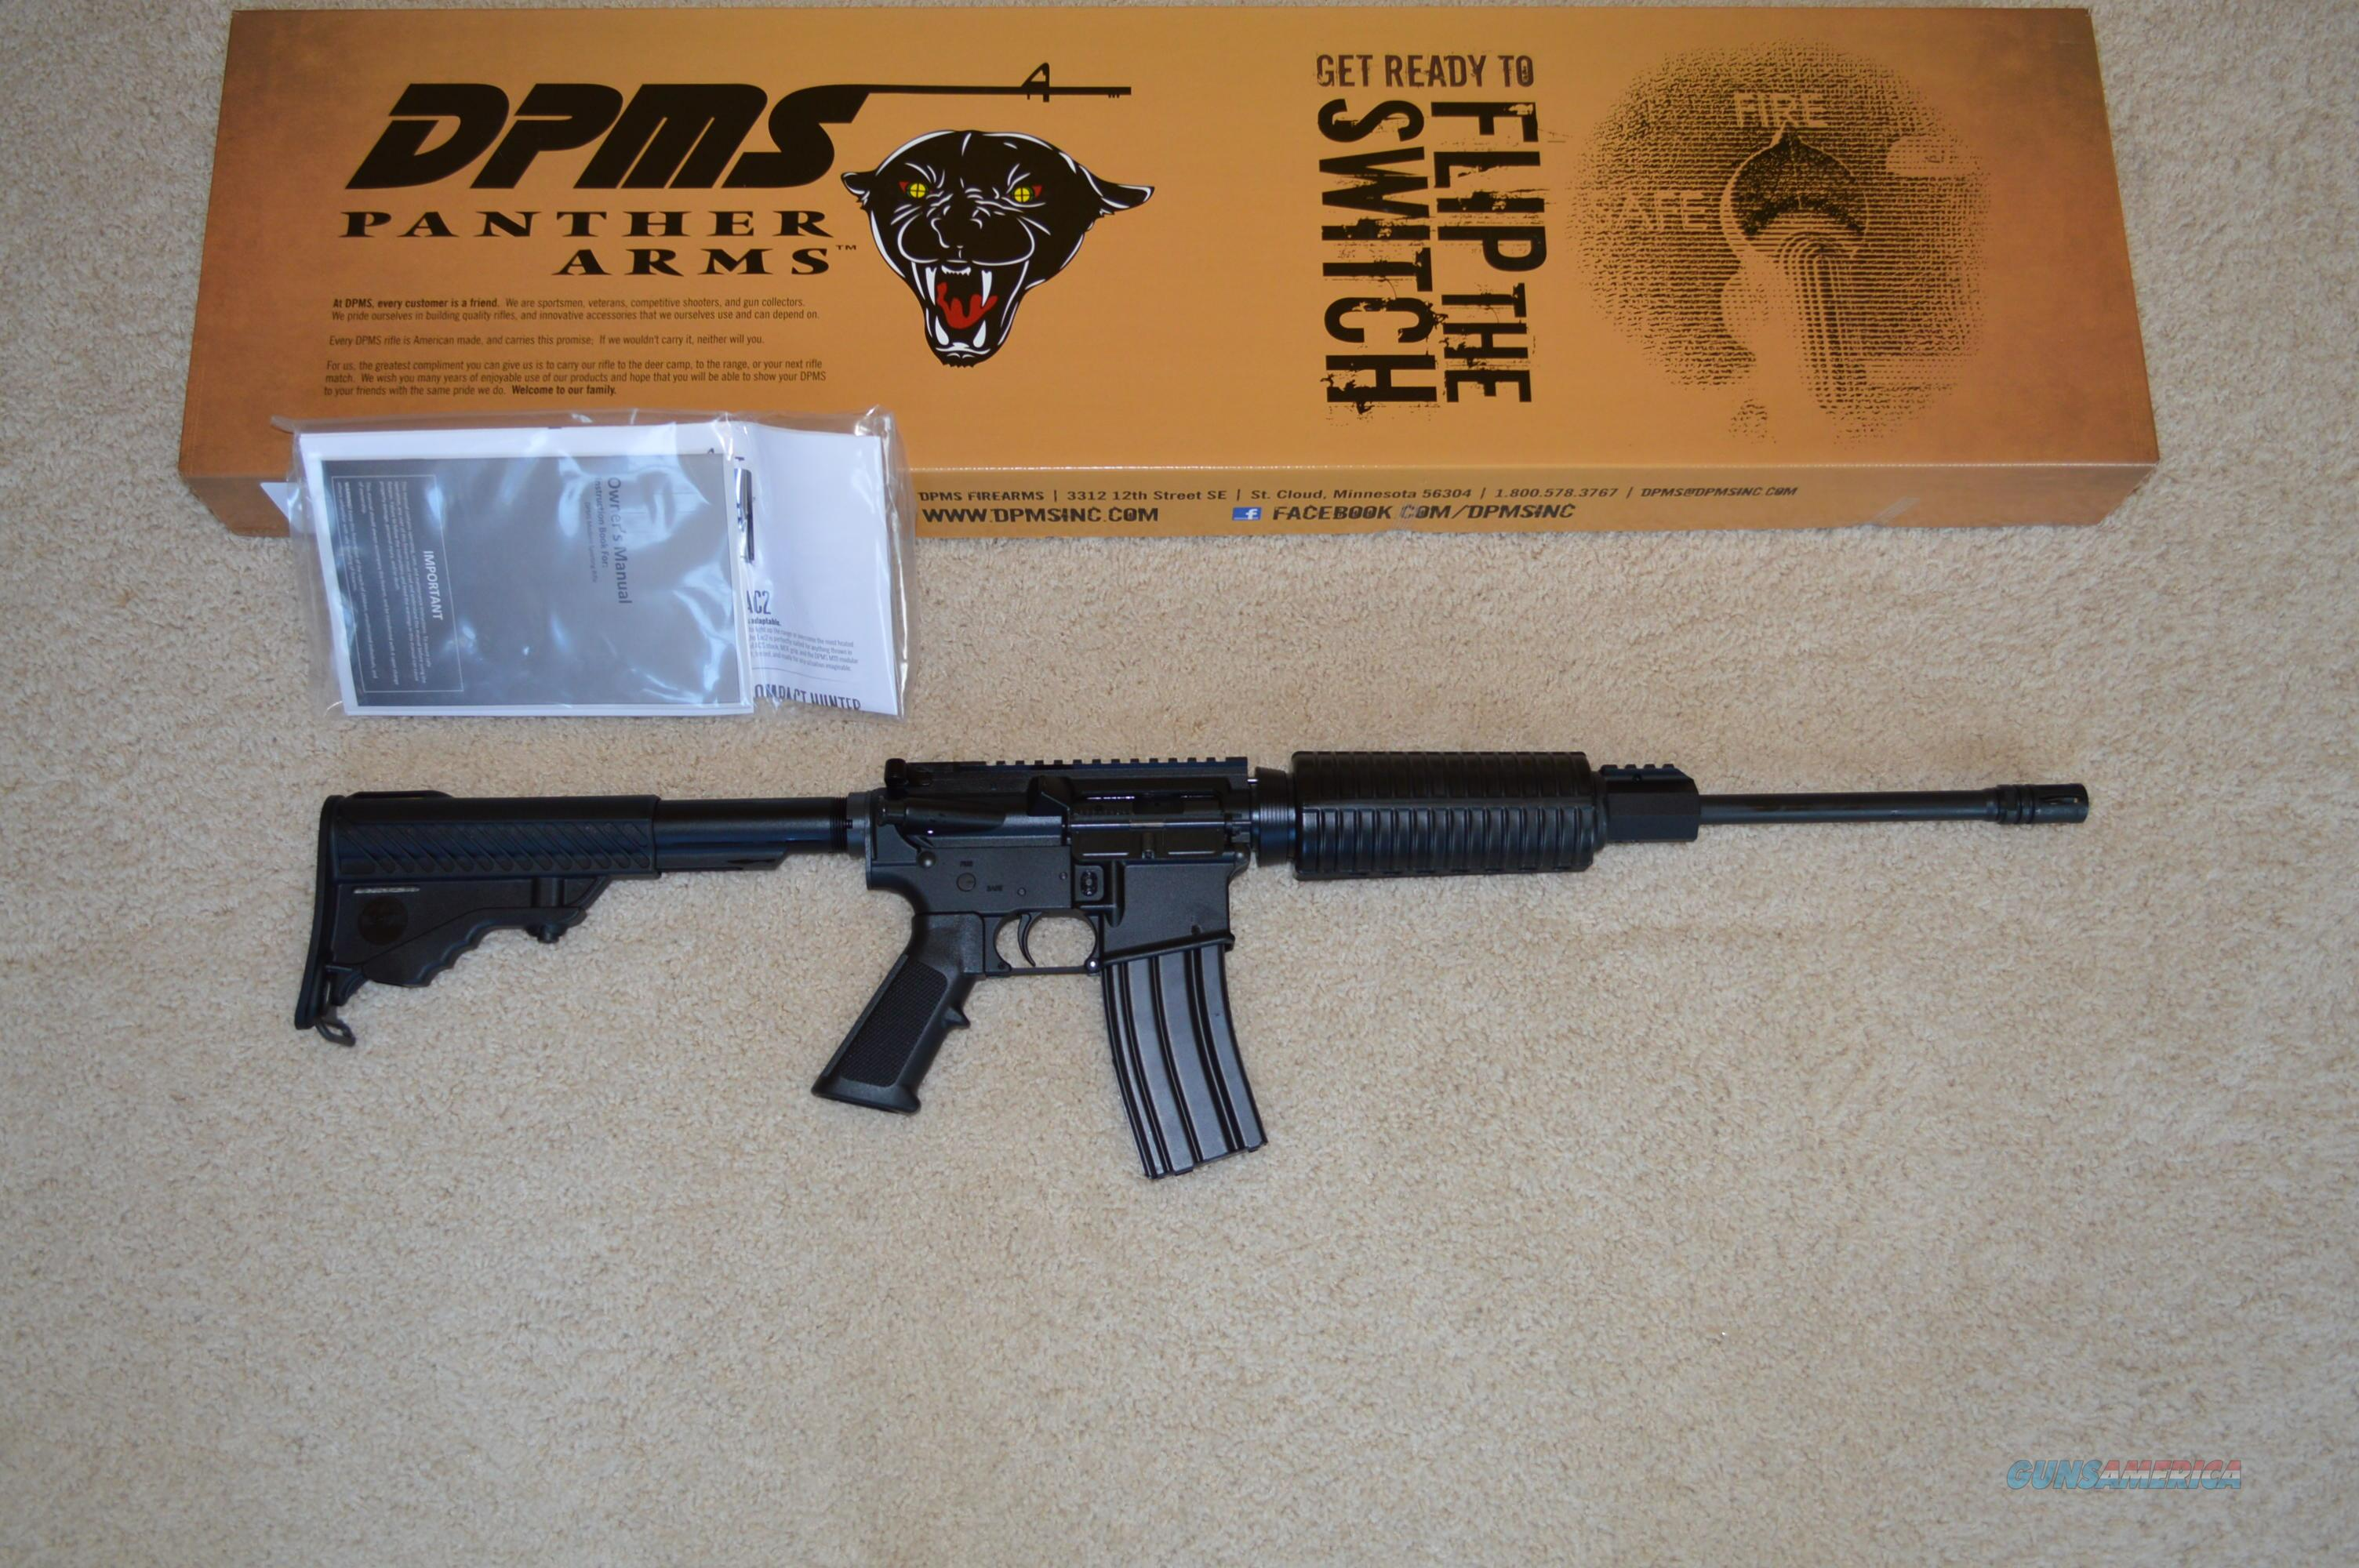 DPMS Oracle AR-15  Guns > Rifles > DPMS - Panther Arms > Complete Rifle